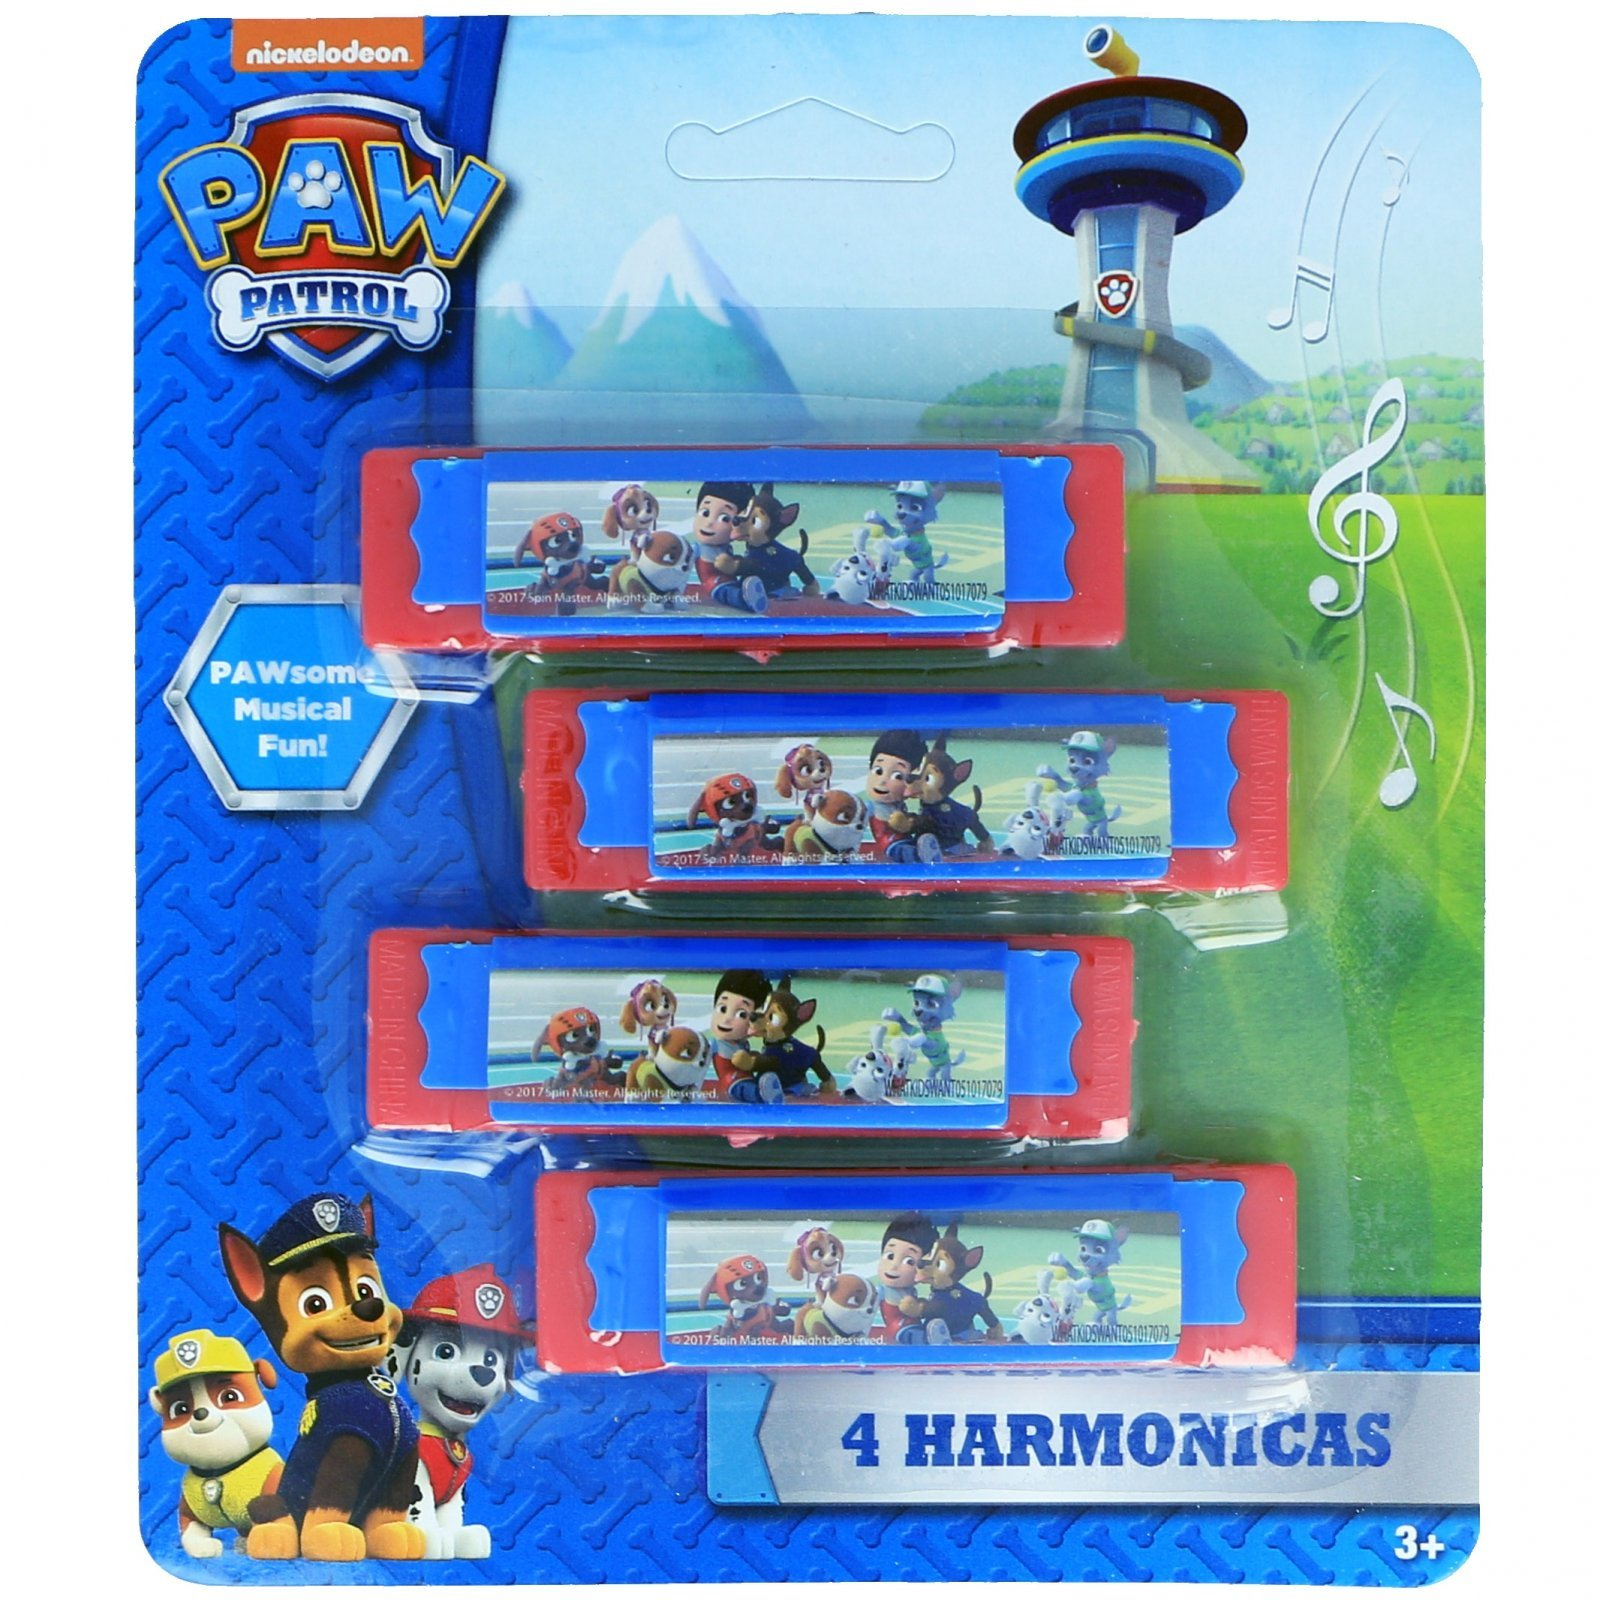 Nickelodeon Paw Patrol Boys Mini Harmonicas Kids Musical Instrument Toys - Red